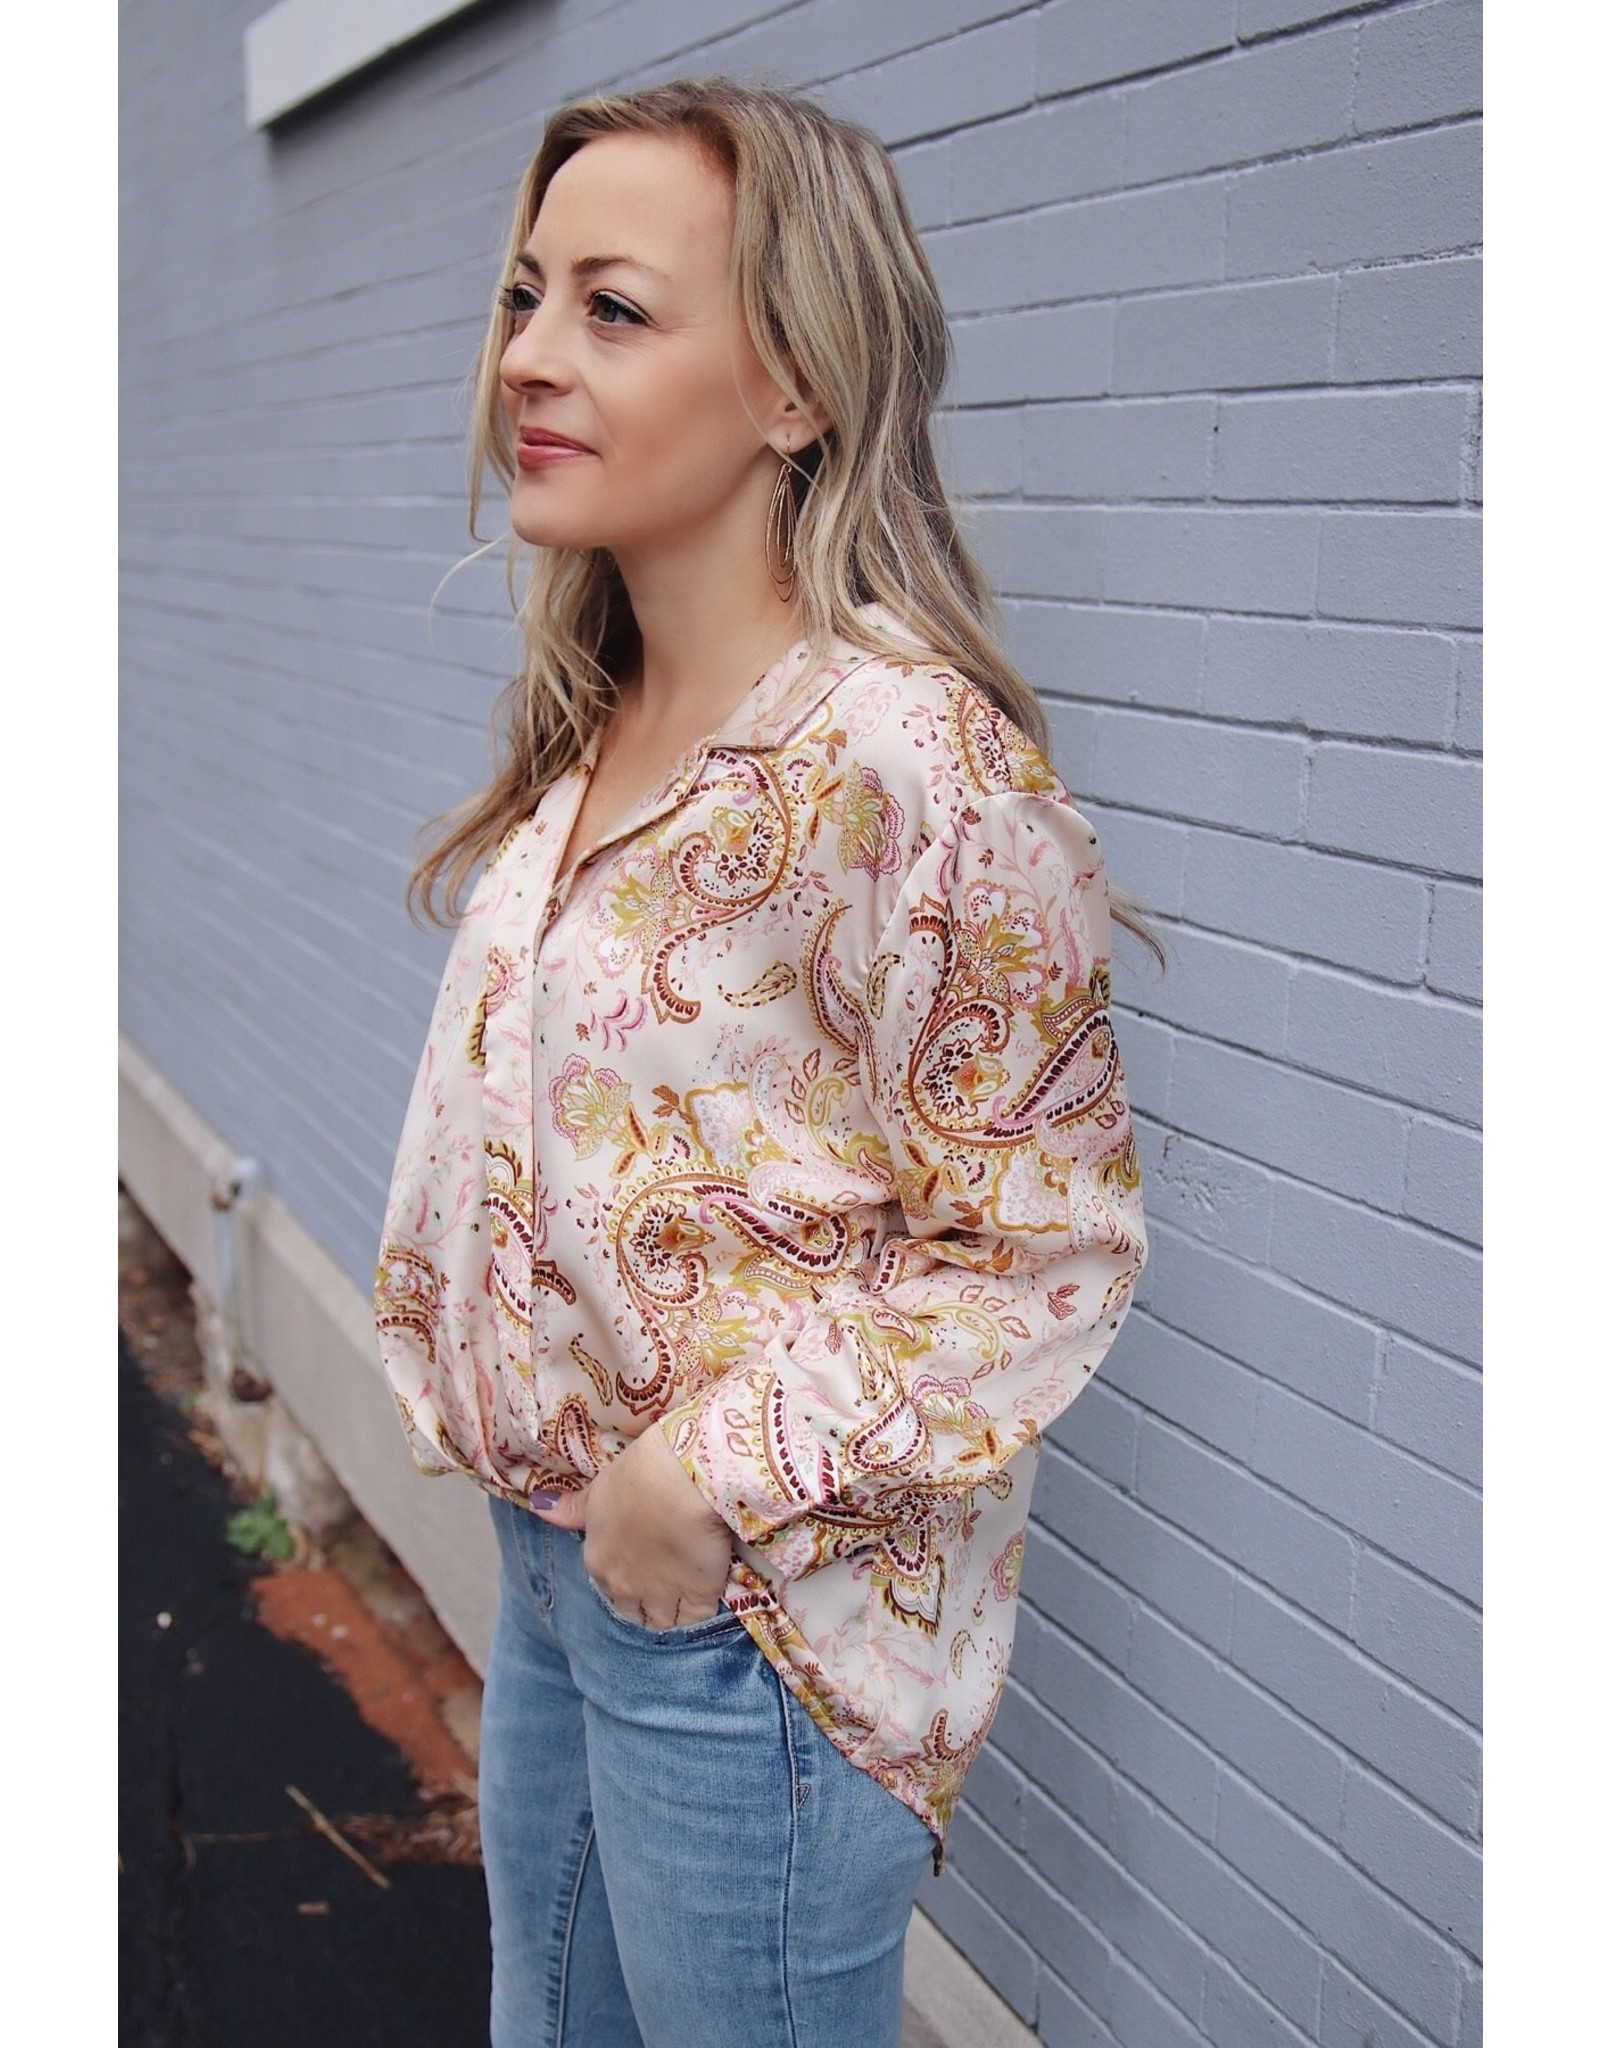 HOMEROS PAISLEY TOP